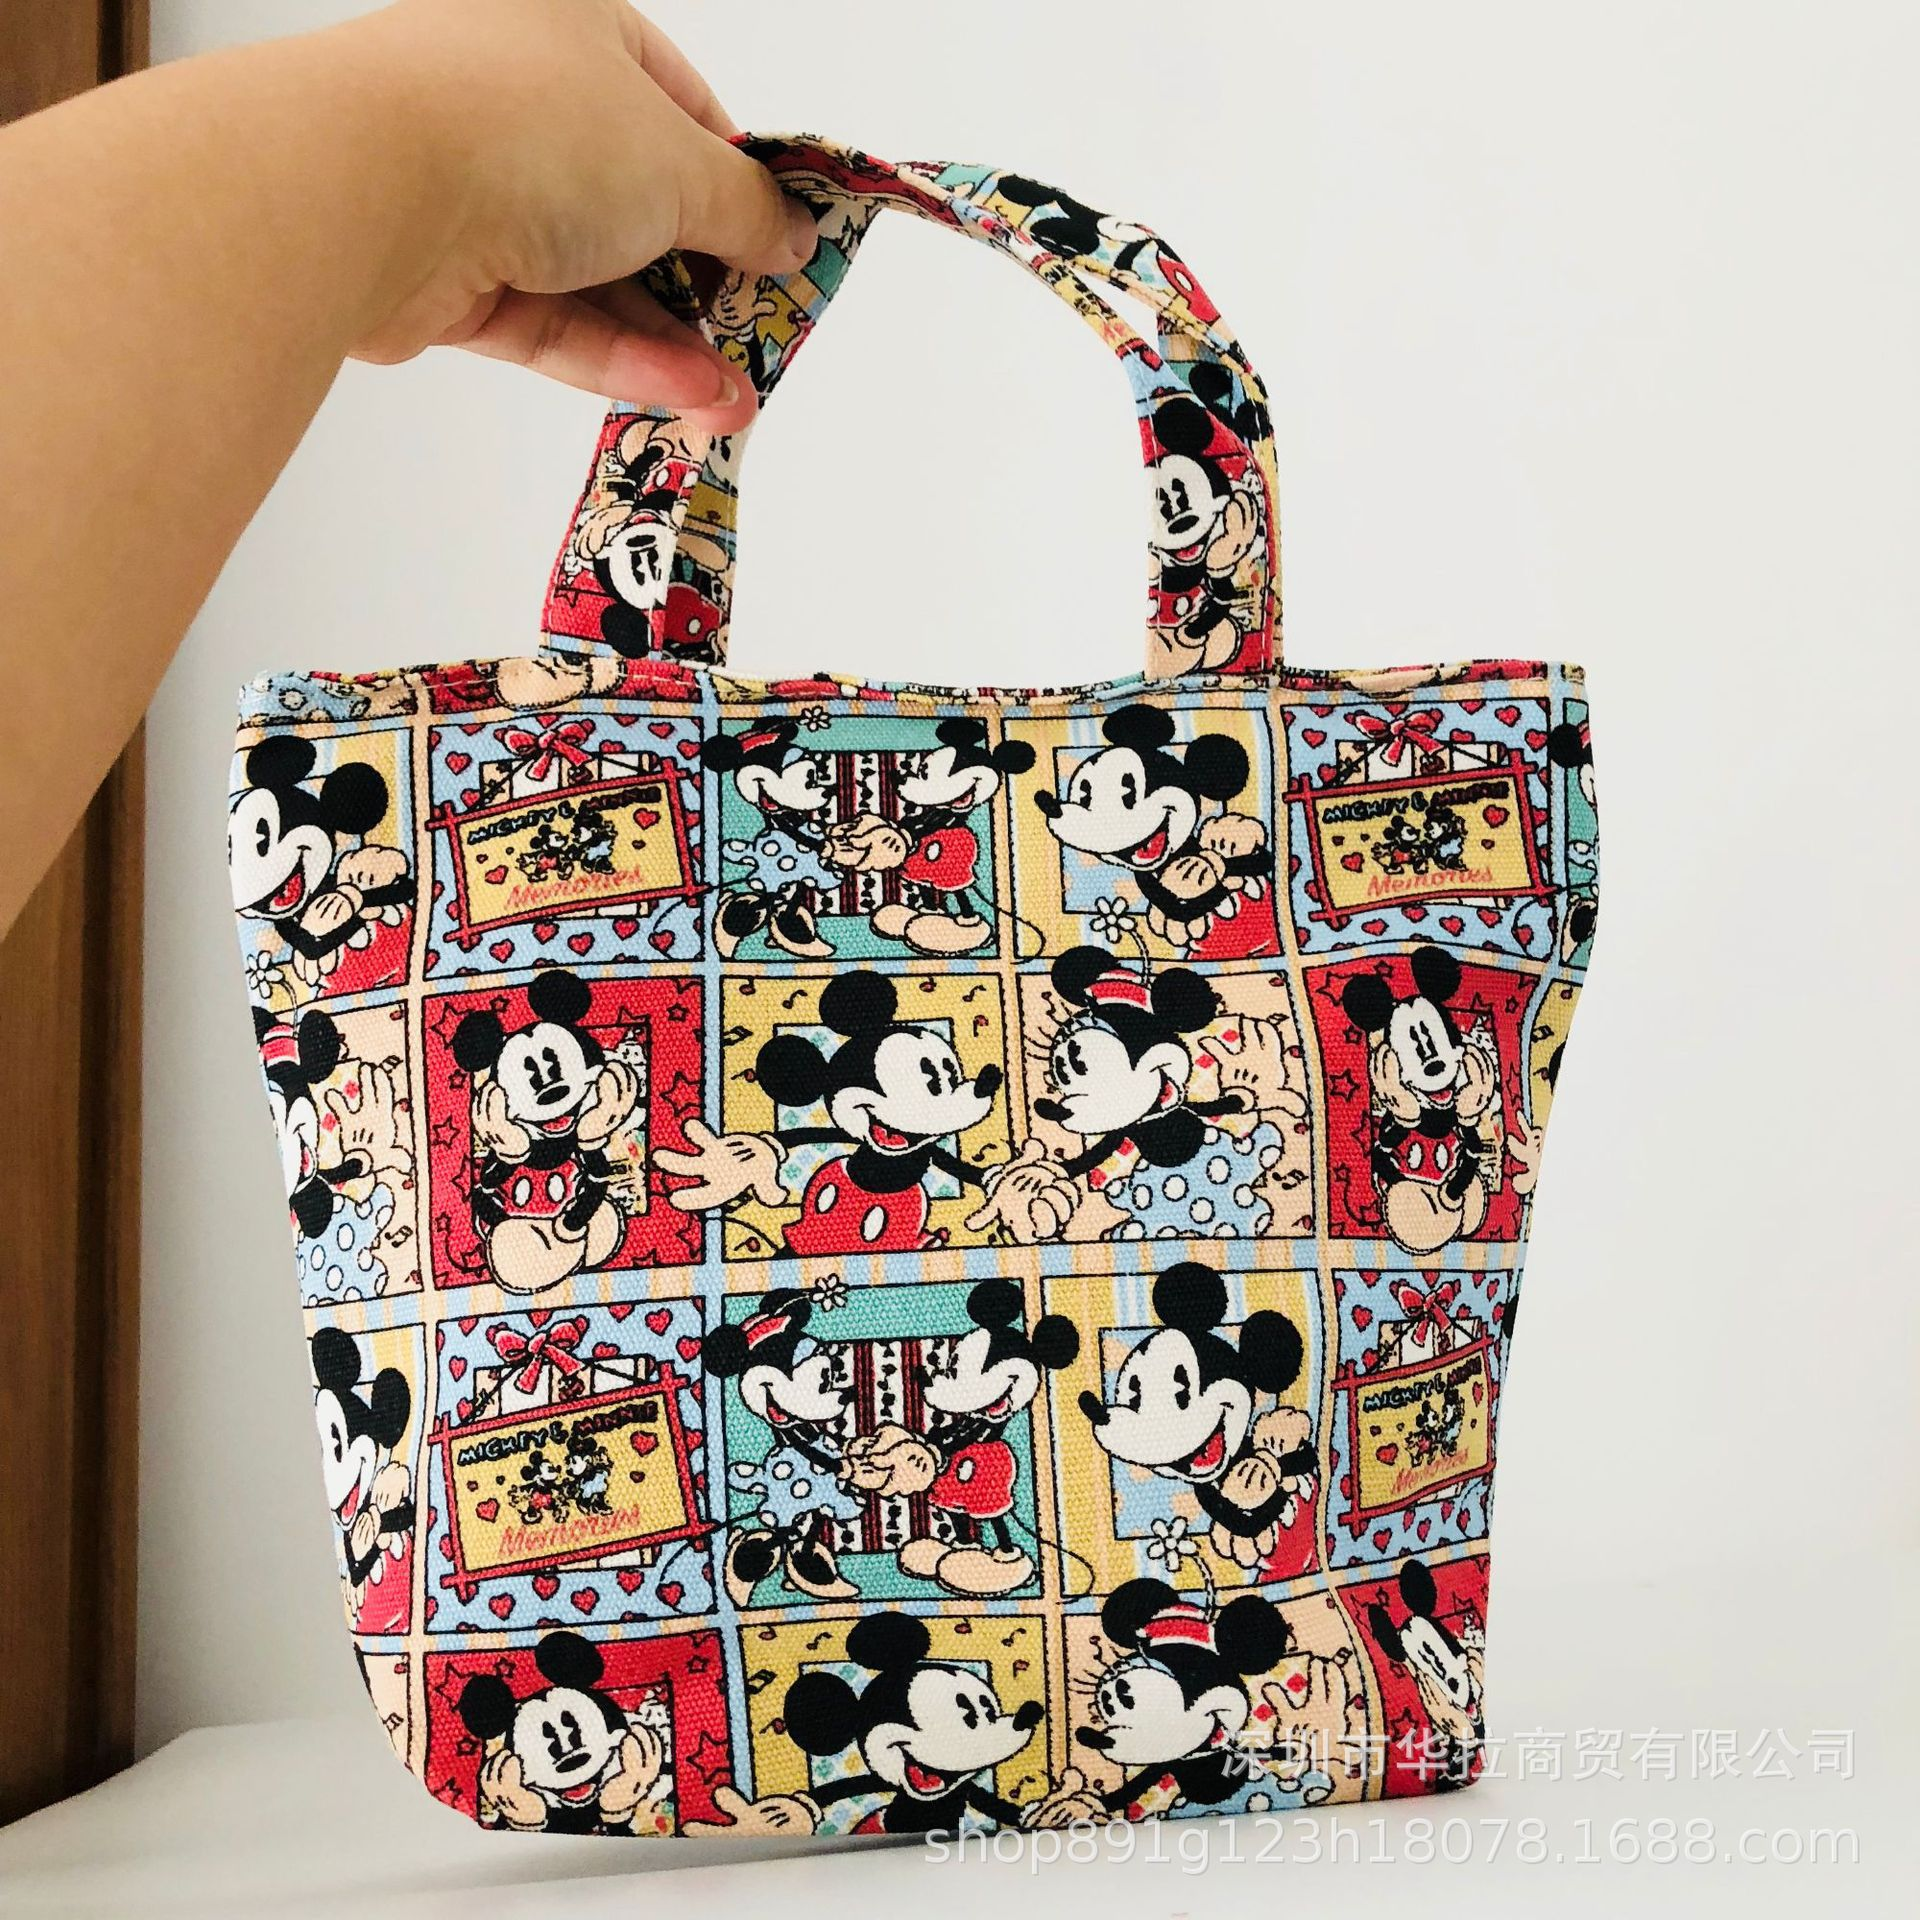 Disney Summer Portable Canvas Bag Ladies Cloth Bag Cartoon Mickey Mouse Minnie Bag Student Tool Sundries Bag Totes Hand Bag L